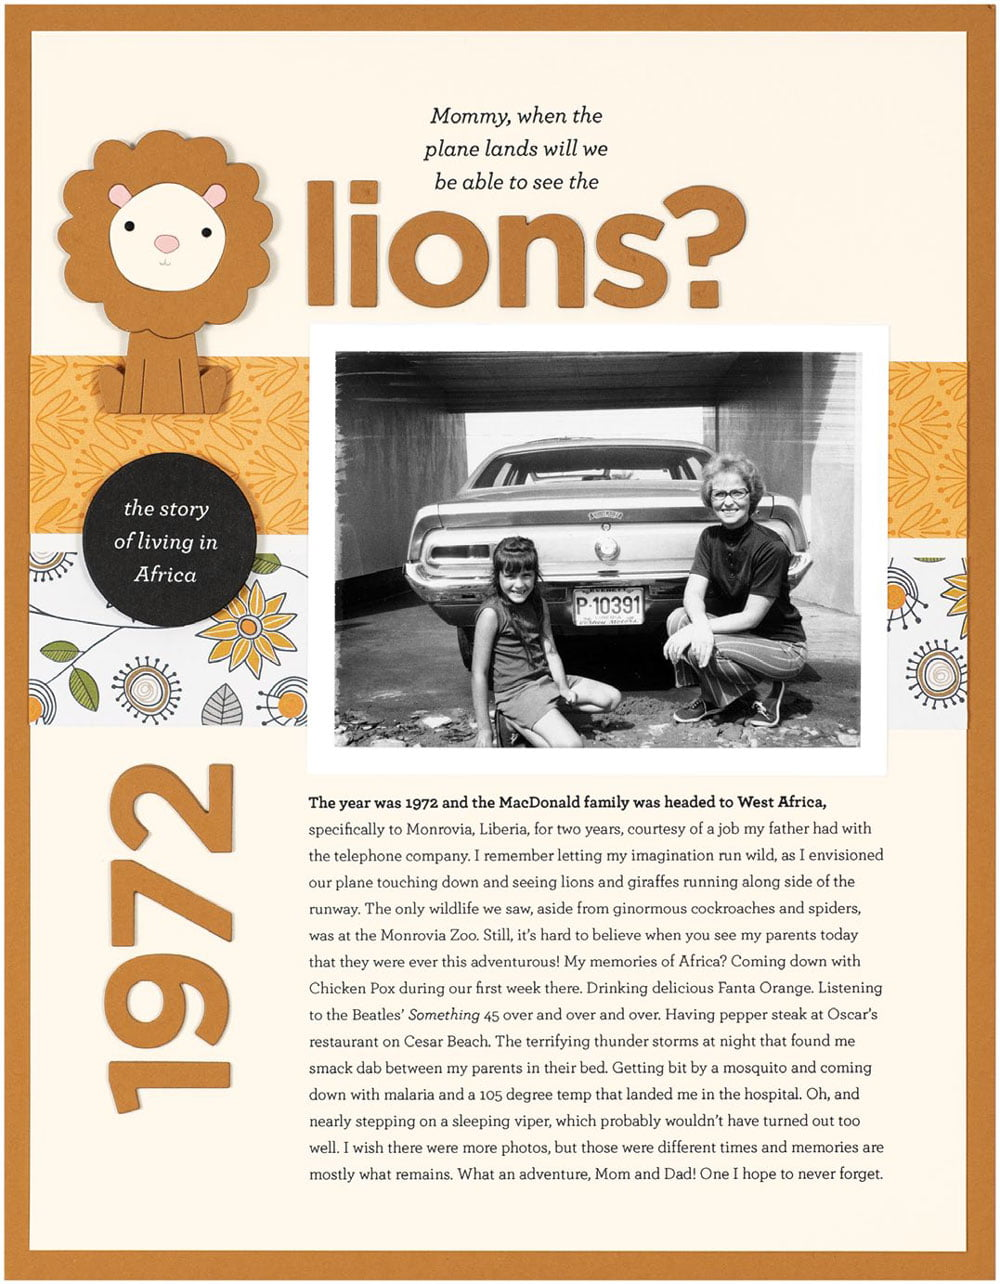 SCT Fall 2018 - Will We Be Able To See The Lions by Cathy Zielske